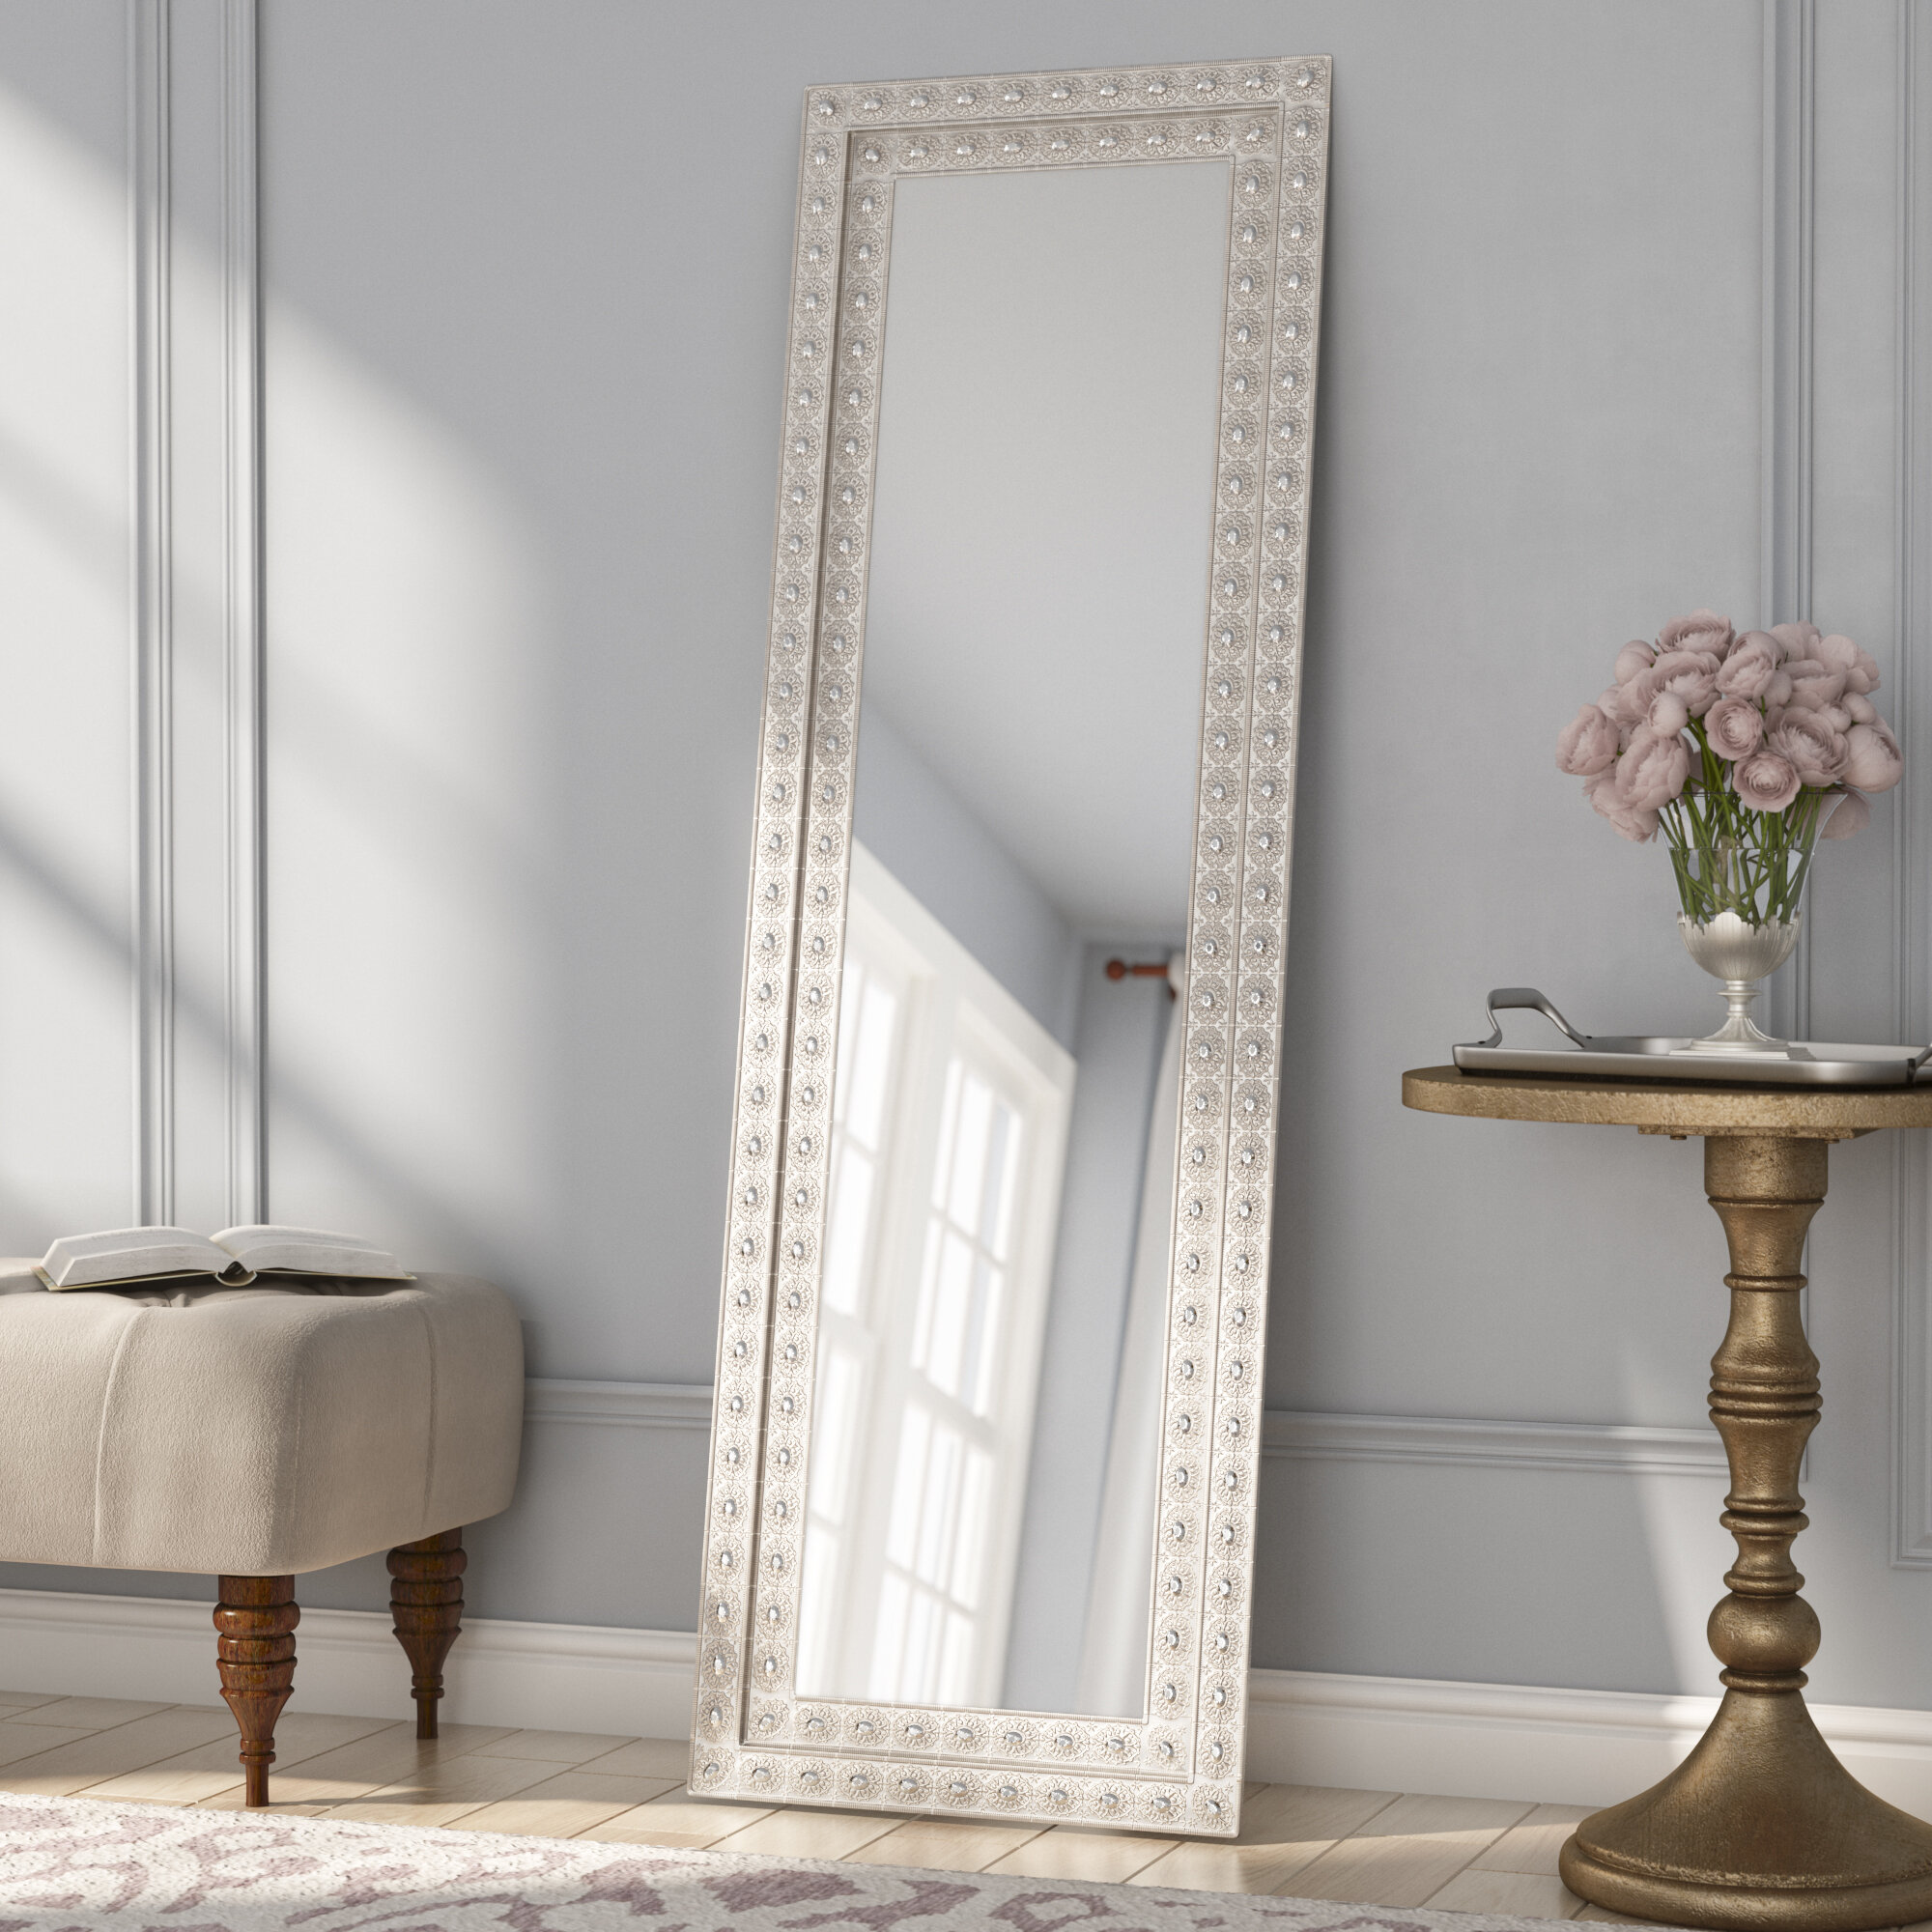 Floor Mirrors Up To 60 Off Through 9 29 Wayfair